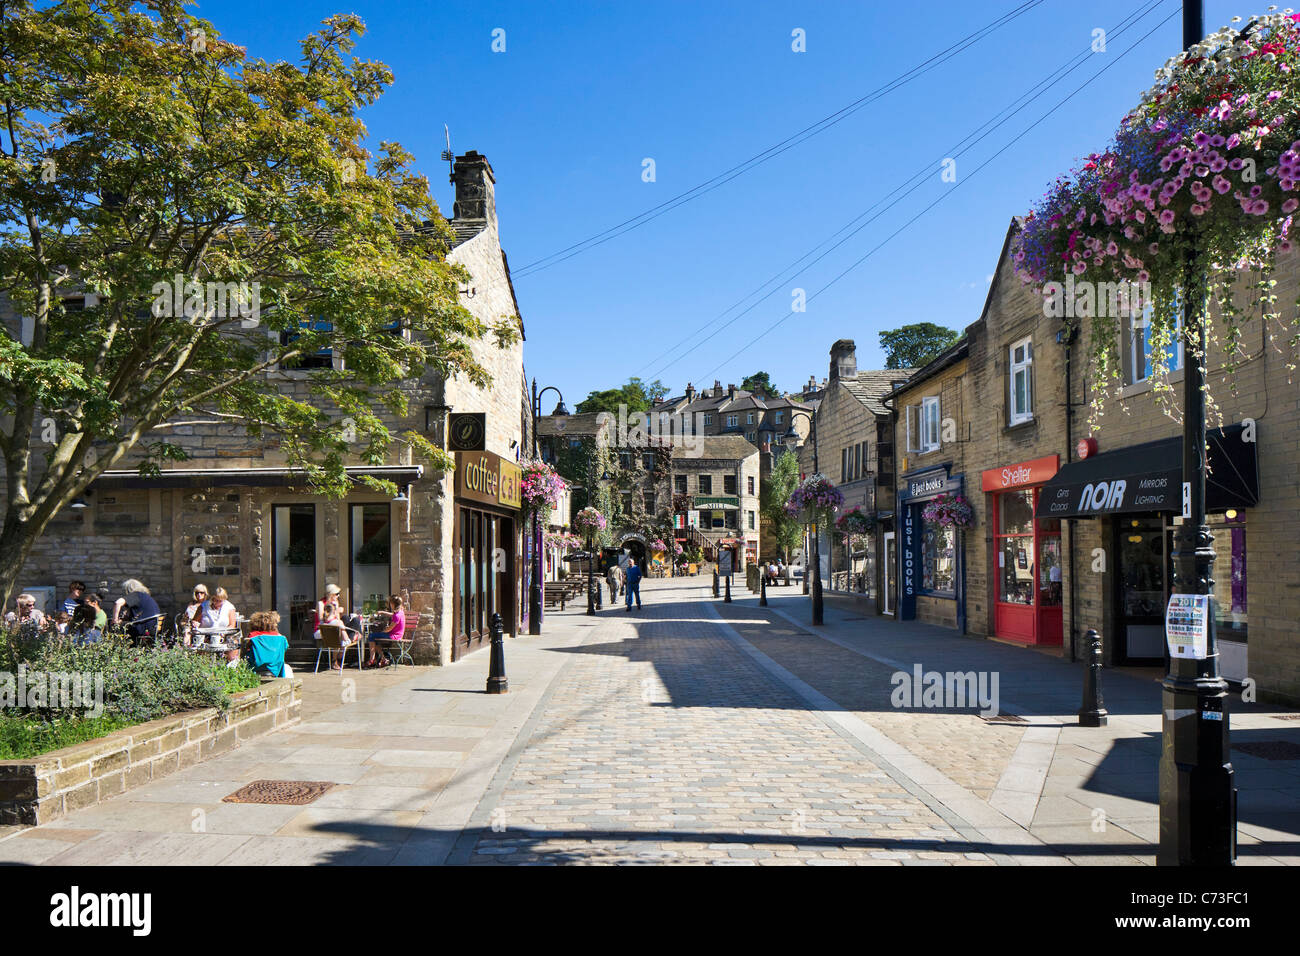 Shops and cafe on Bridge Gate in the town centre, Hebden Bridge, Calder Valley, West Yorkshire, England, UK - Stock Image